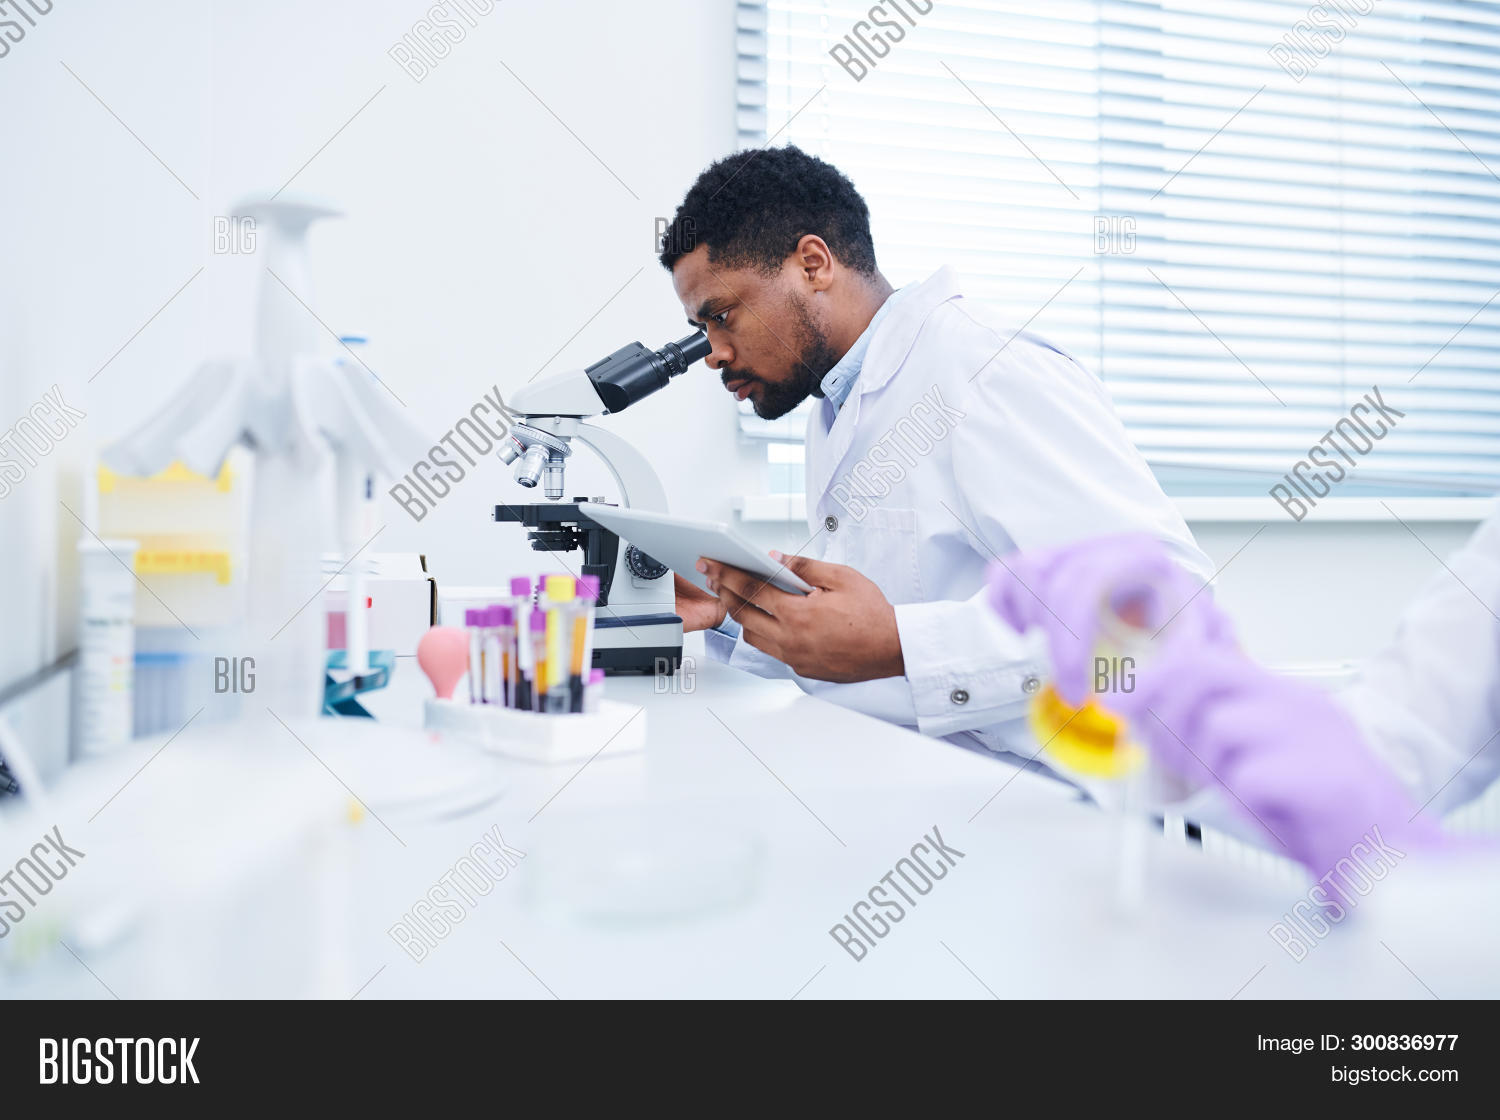 Concentrated Handsome Black Male Lab Technician With Beard Sitting At Table And Using Microscope Whi